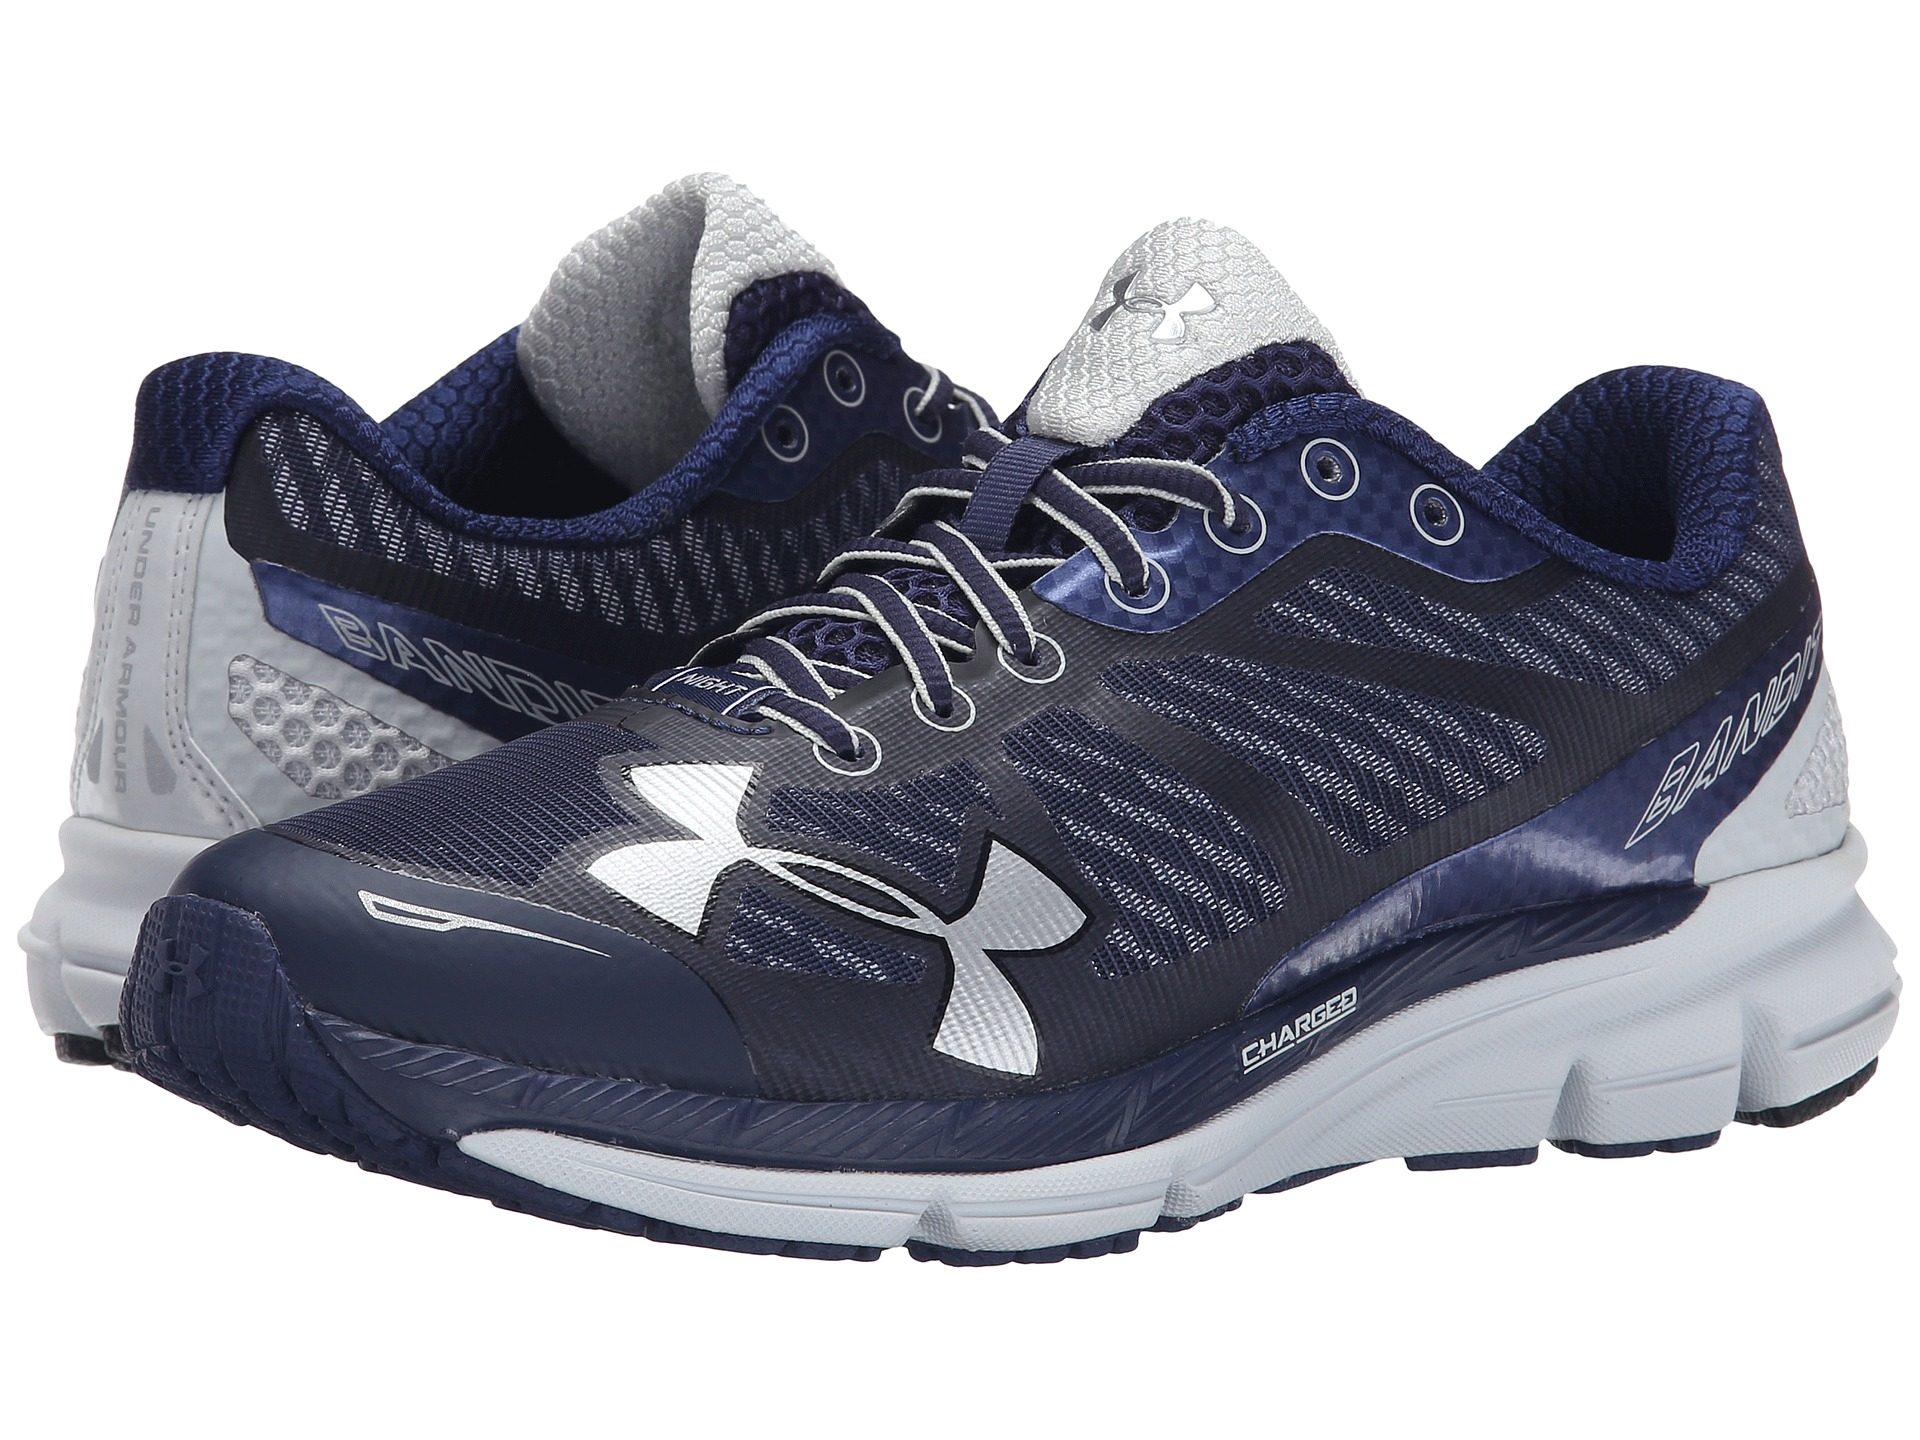 new products 44ad7 1bbf2 Women's Blue Ua Charged Bandit Night